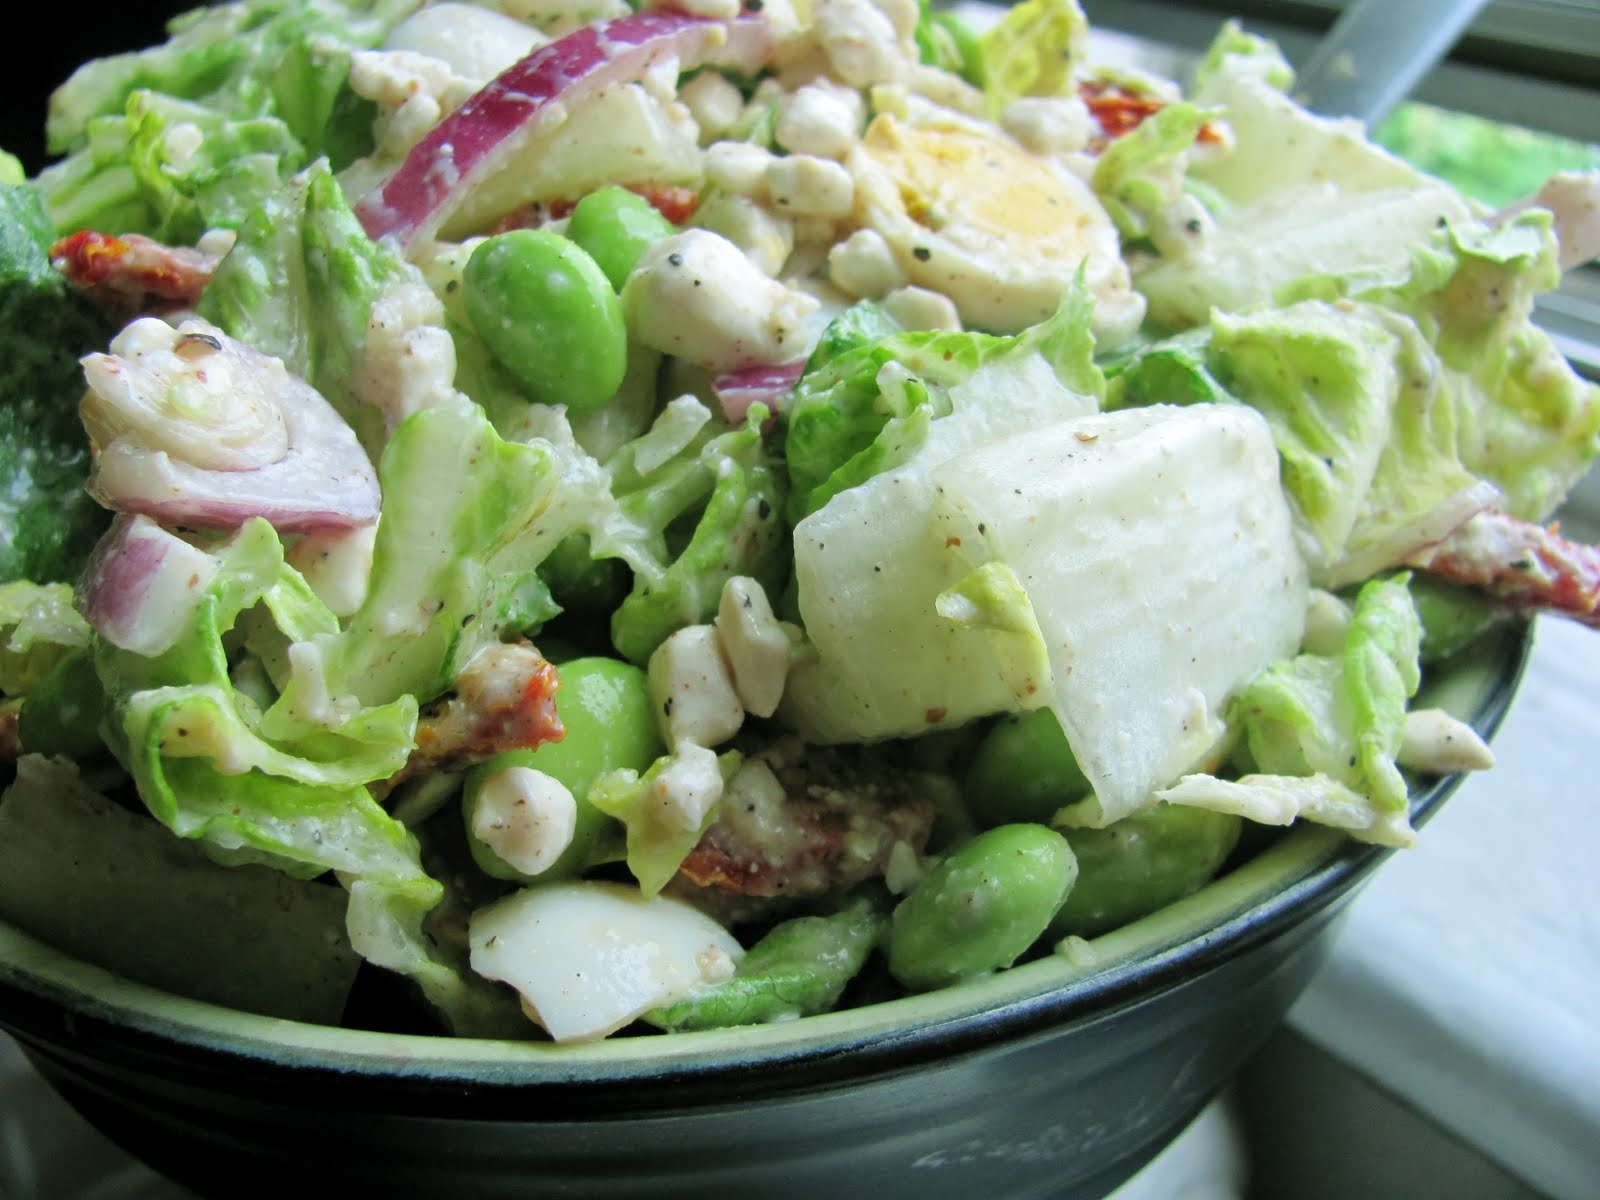 Here is my new C reamy Caesar Salad - why would you want to make it ...